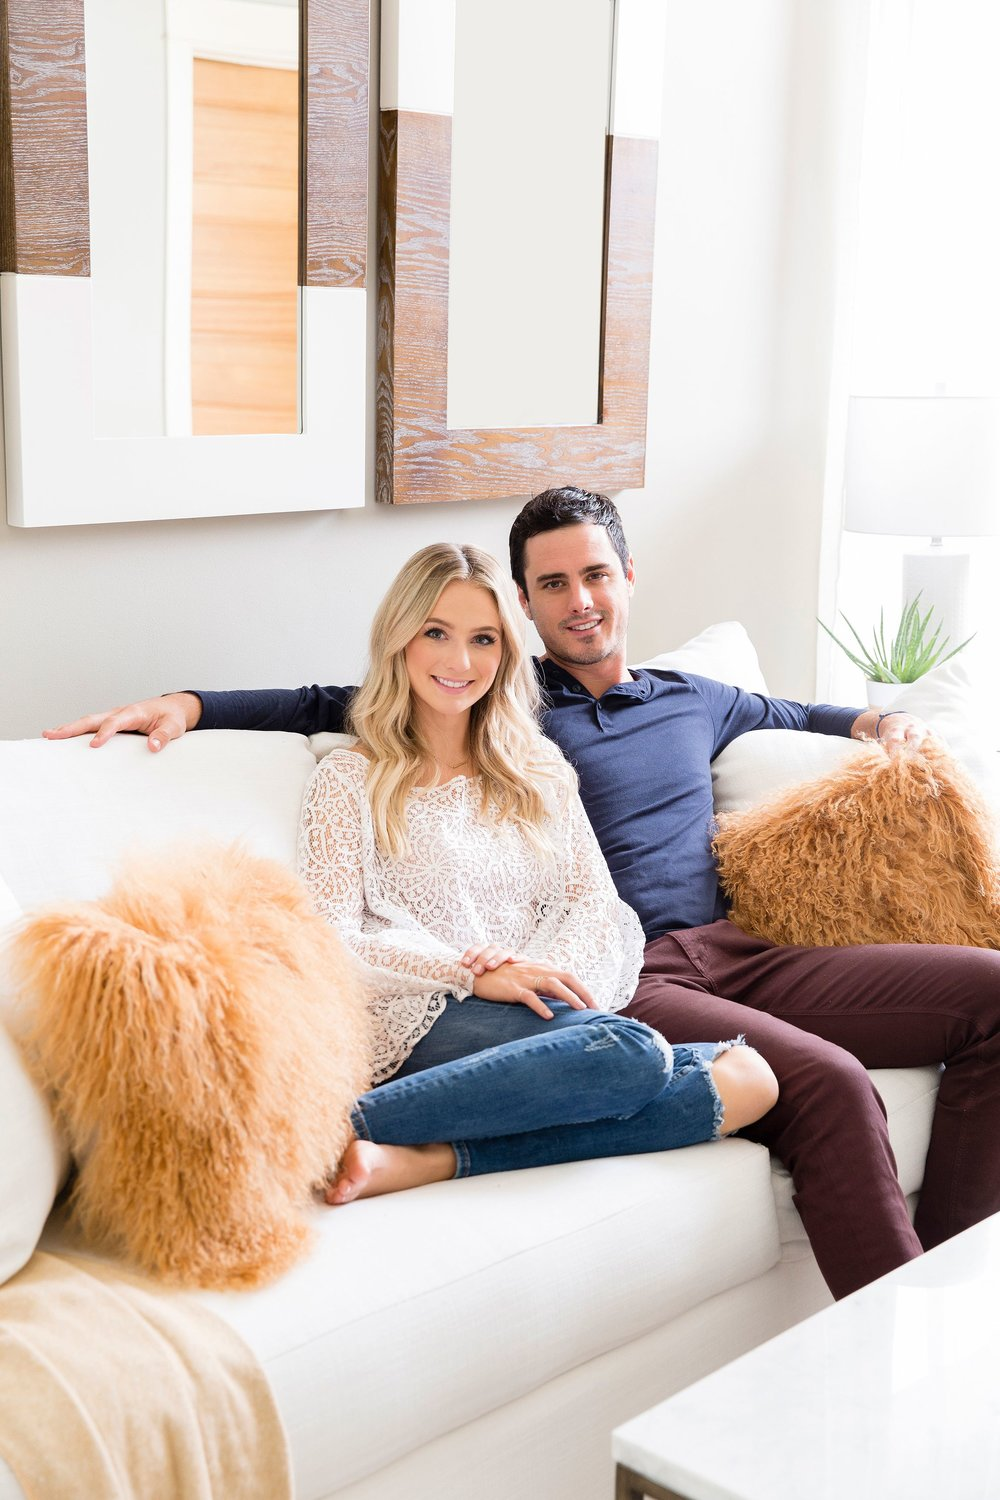 Lauren Bushnell and Ben Higgins home